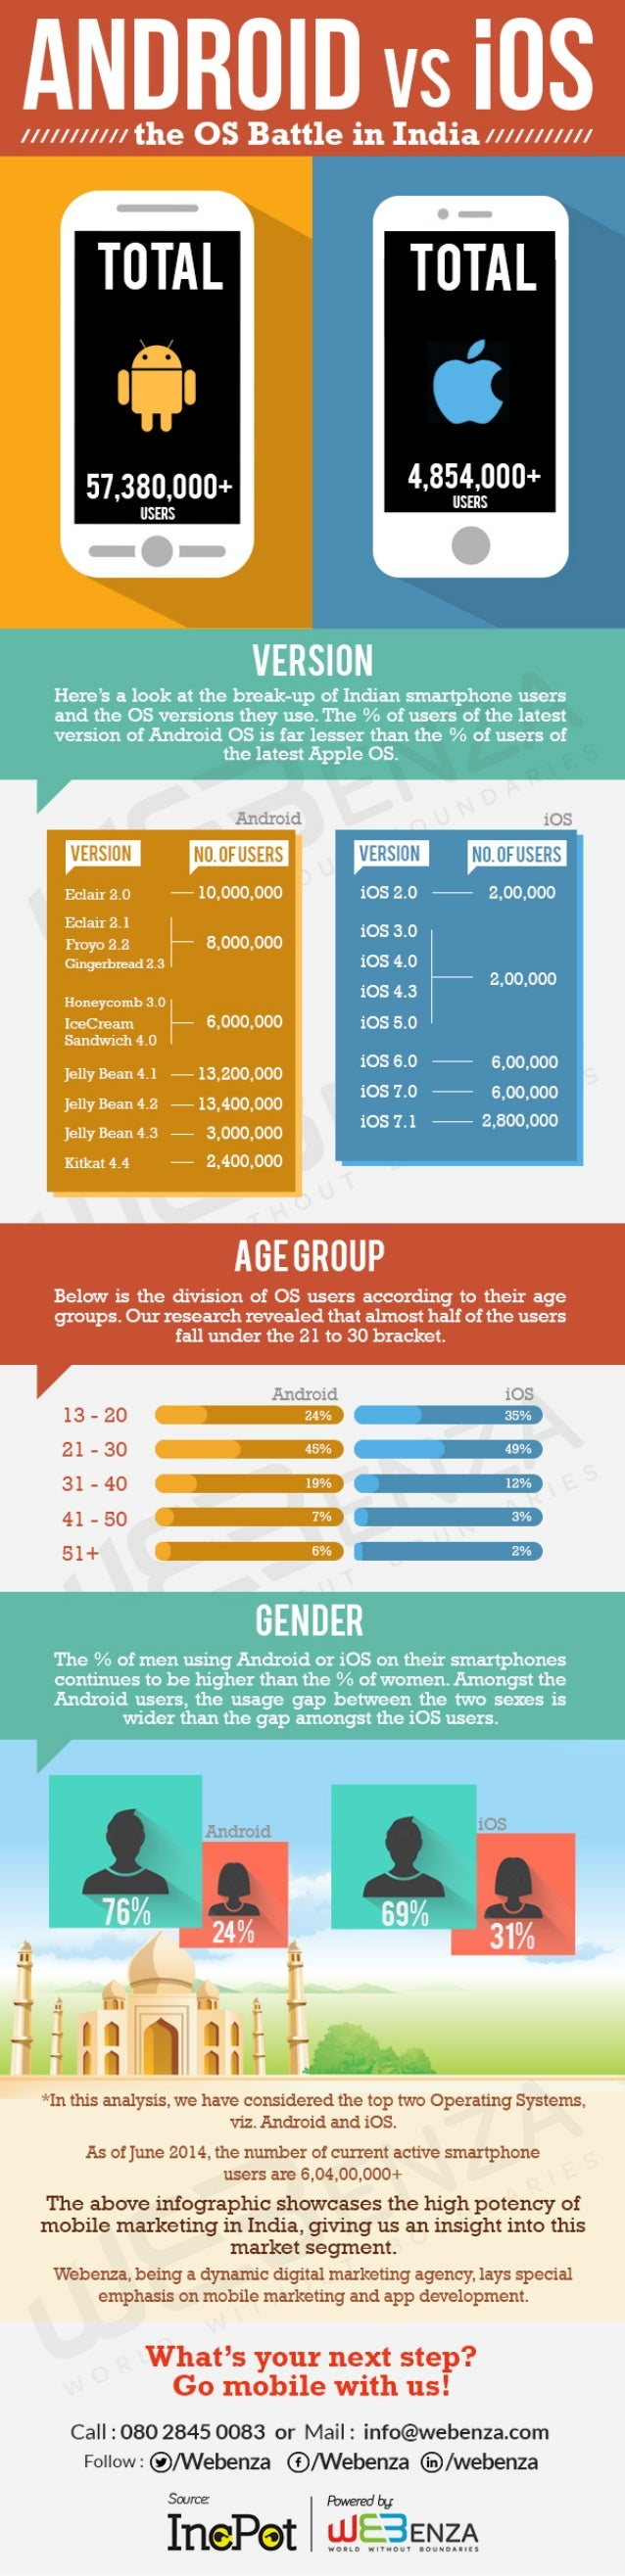 Analysis on Android vs iOS Battle in India, 2014